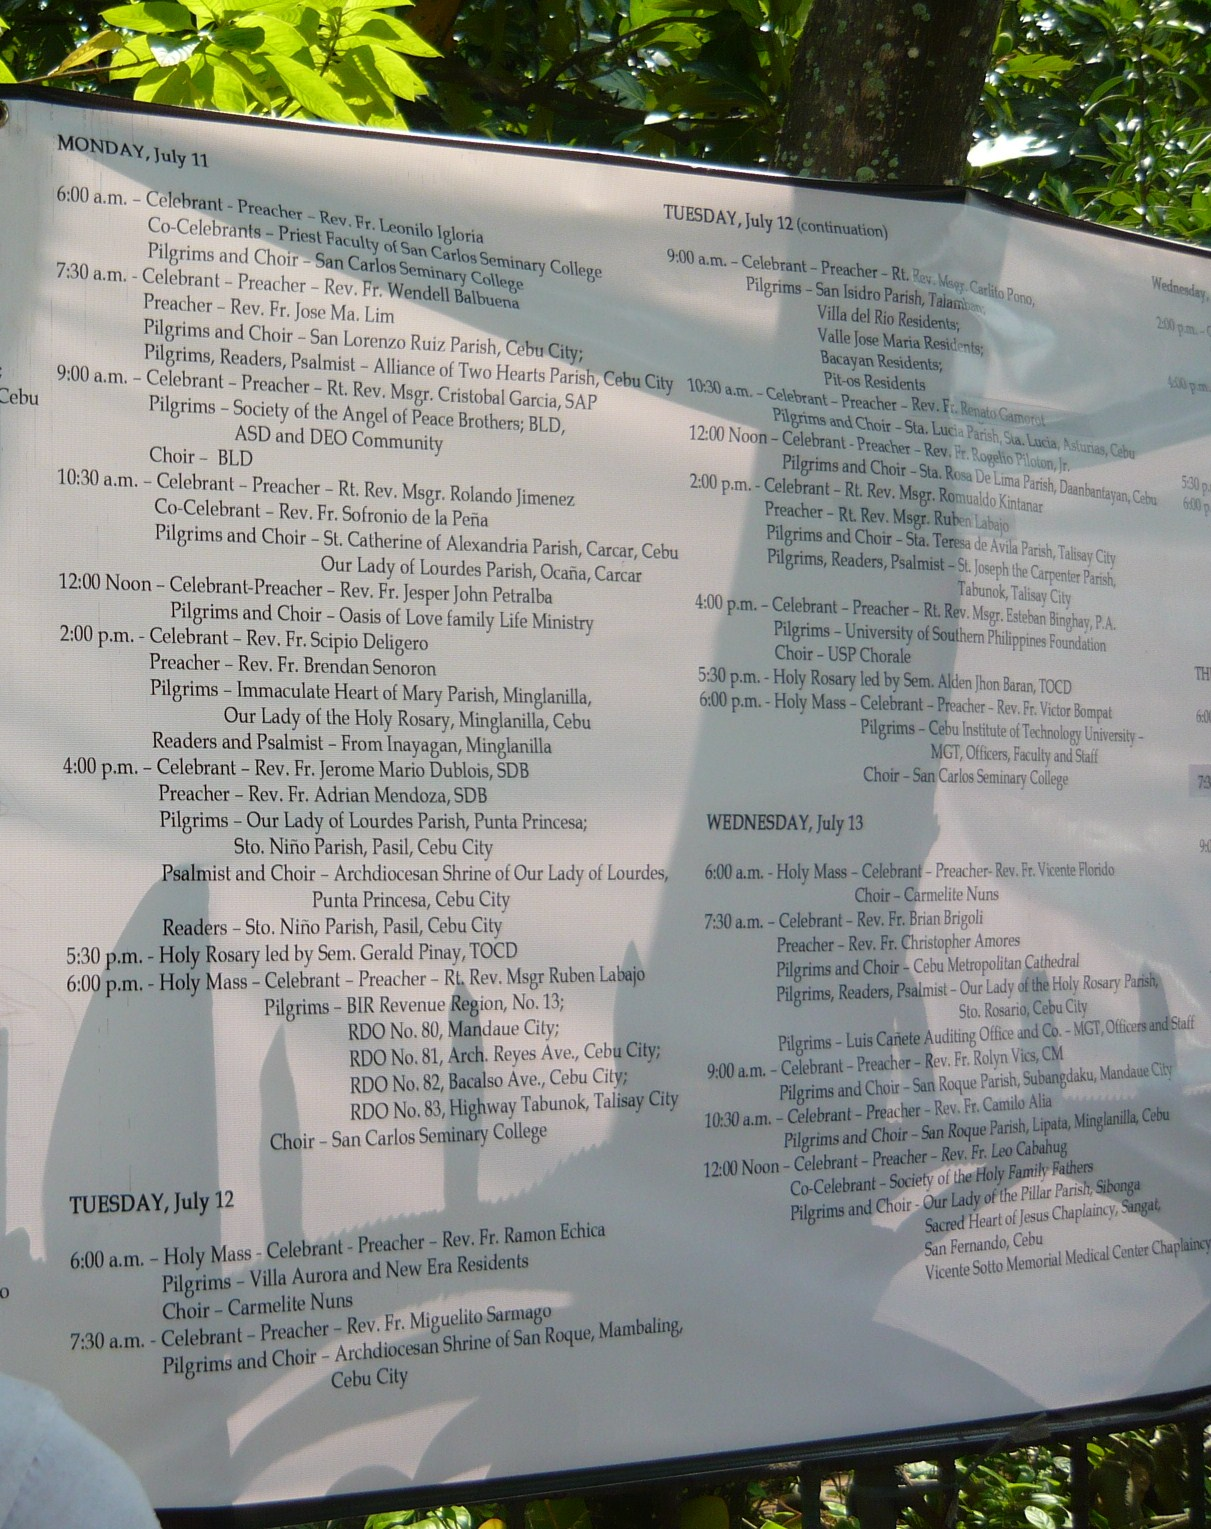 Schedule of Masses and Pilgrimages at Carmelite Monastery